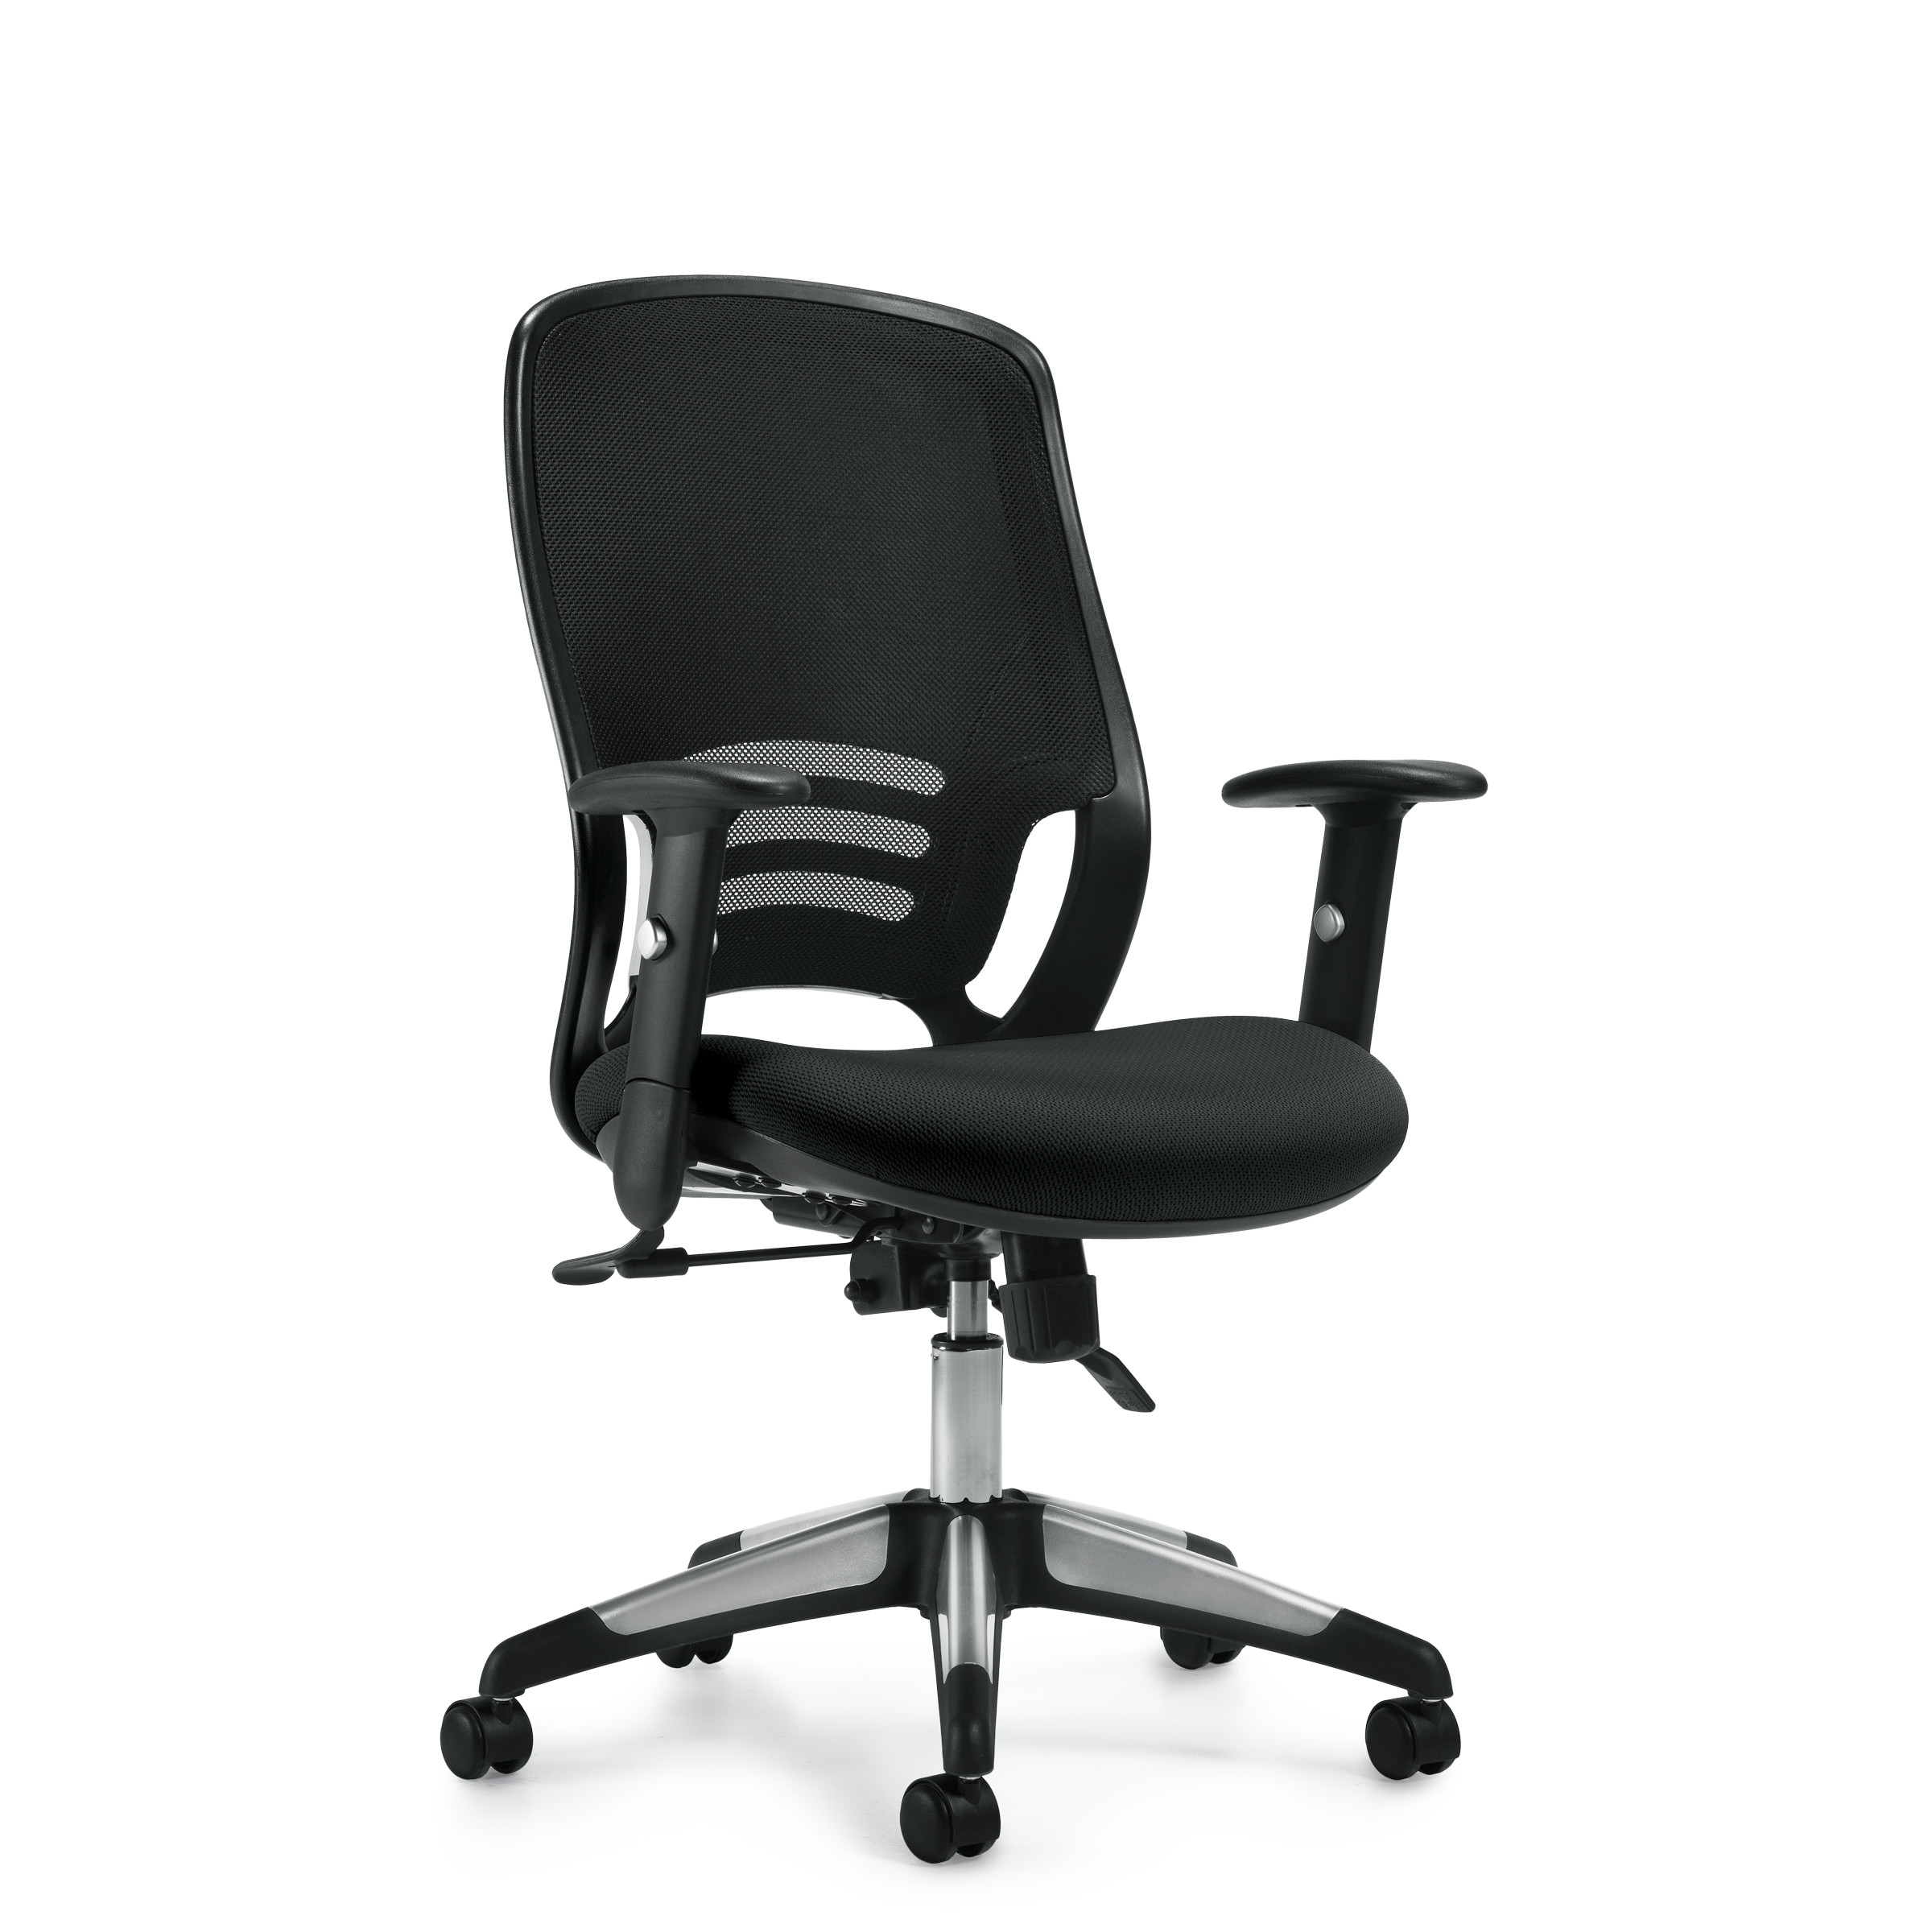 OTG Mesh High Back Manager's Chair #OTG11685B